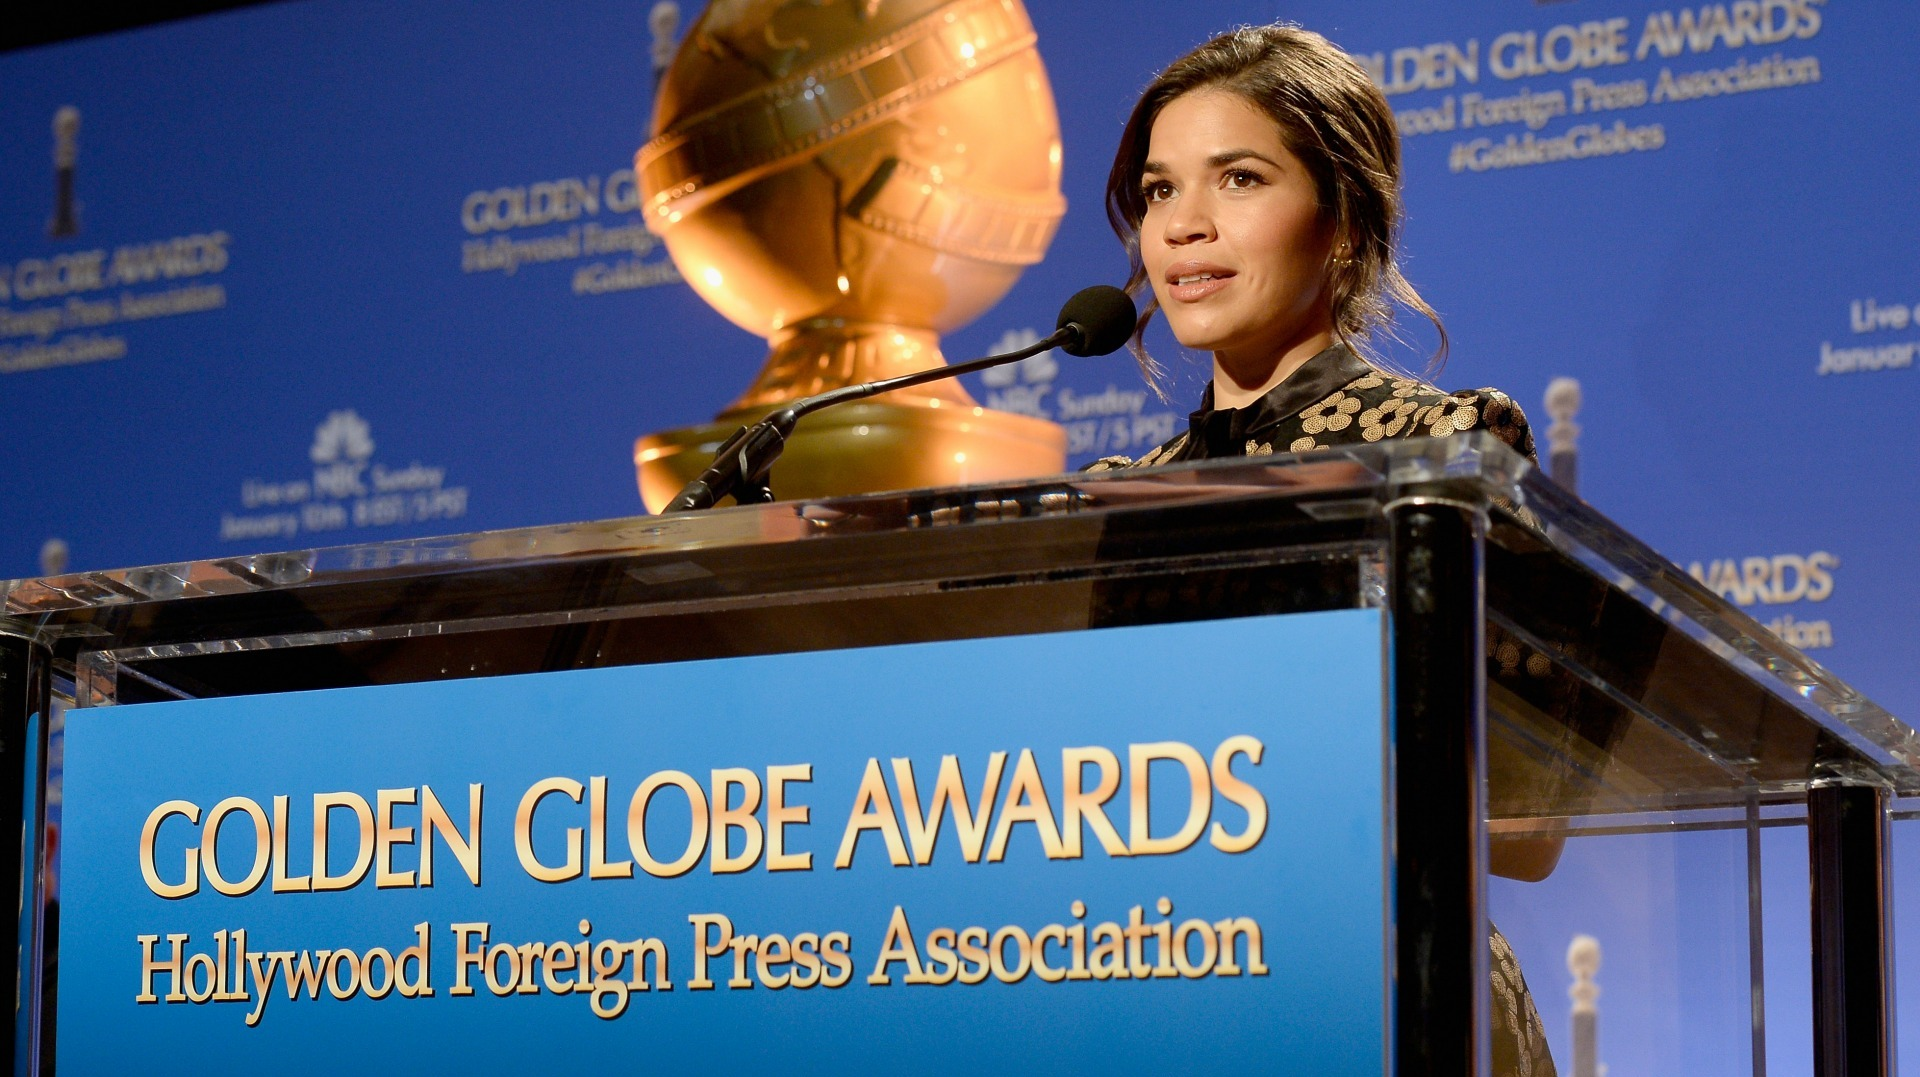 speaks onstage at the 73rd Annual Golden Globe Awards Nominations Announcement at The Beverly Hilton Hotel on December 10, 2015 in Beverly Hills, California.